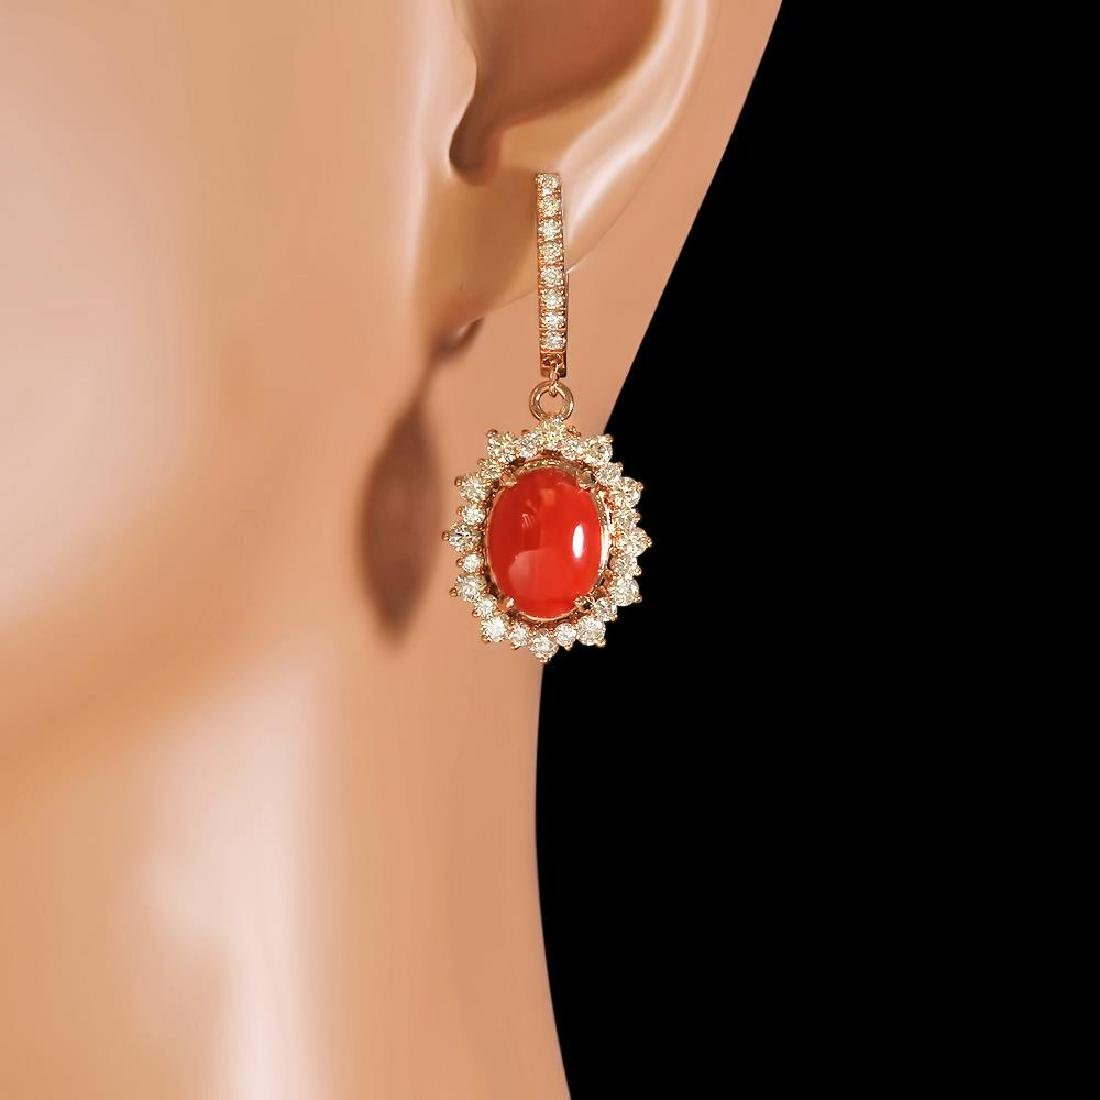 14k Gold 6.11ct Coral 2.55ct Diamond Earrings - 2